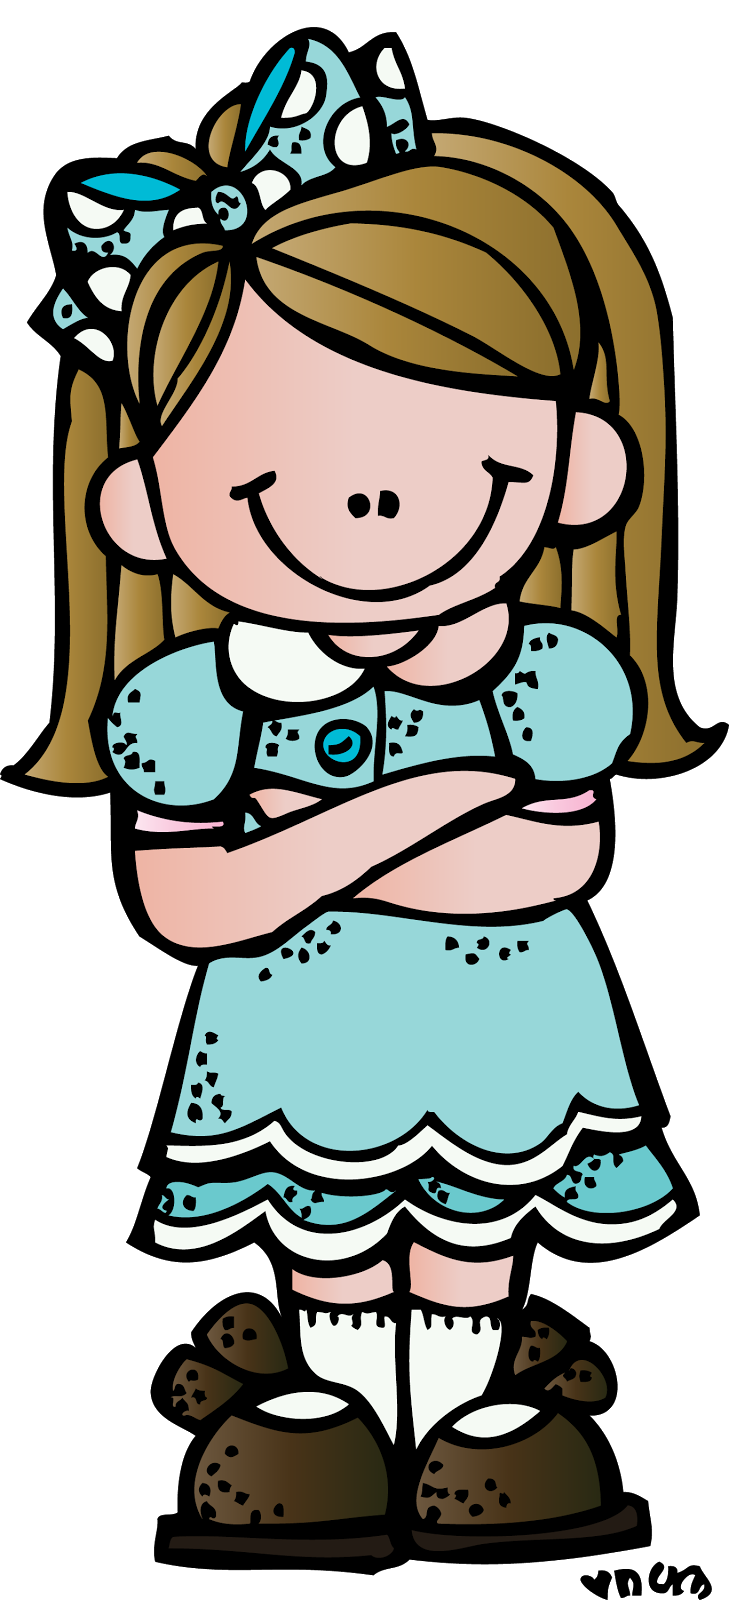 Melonheadz illustrating blog with. Free lds primary boy and girl color clipart